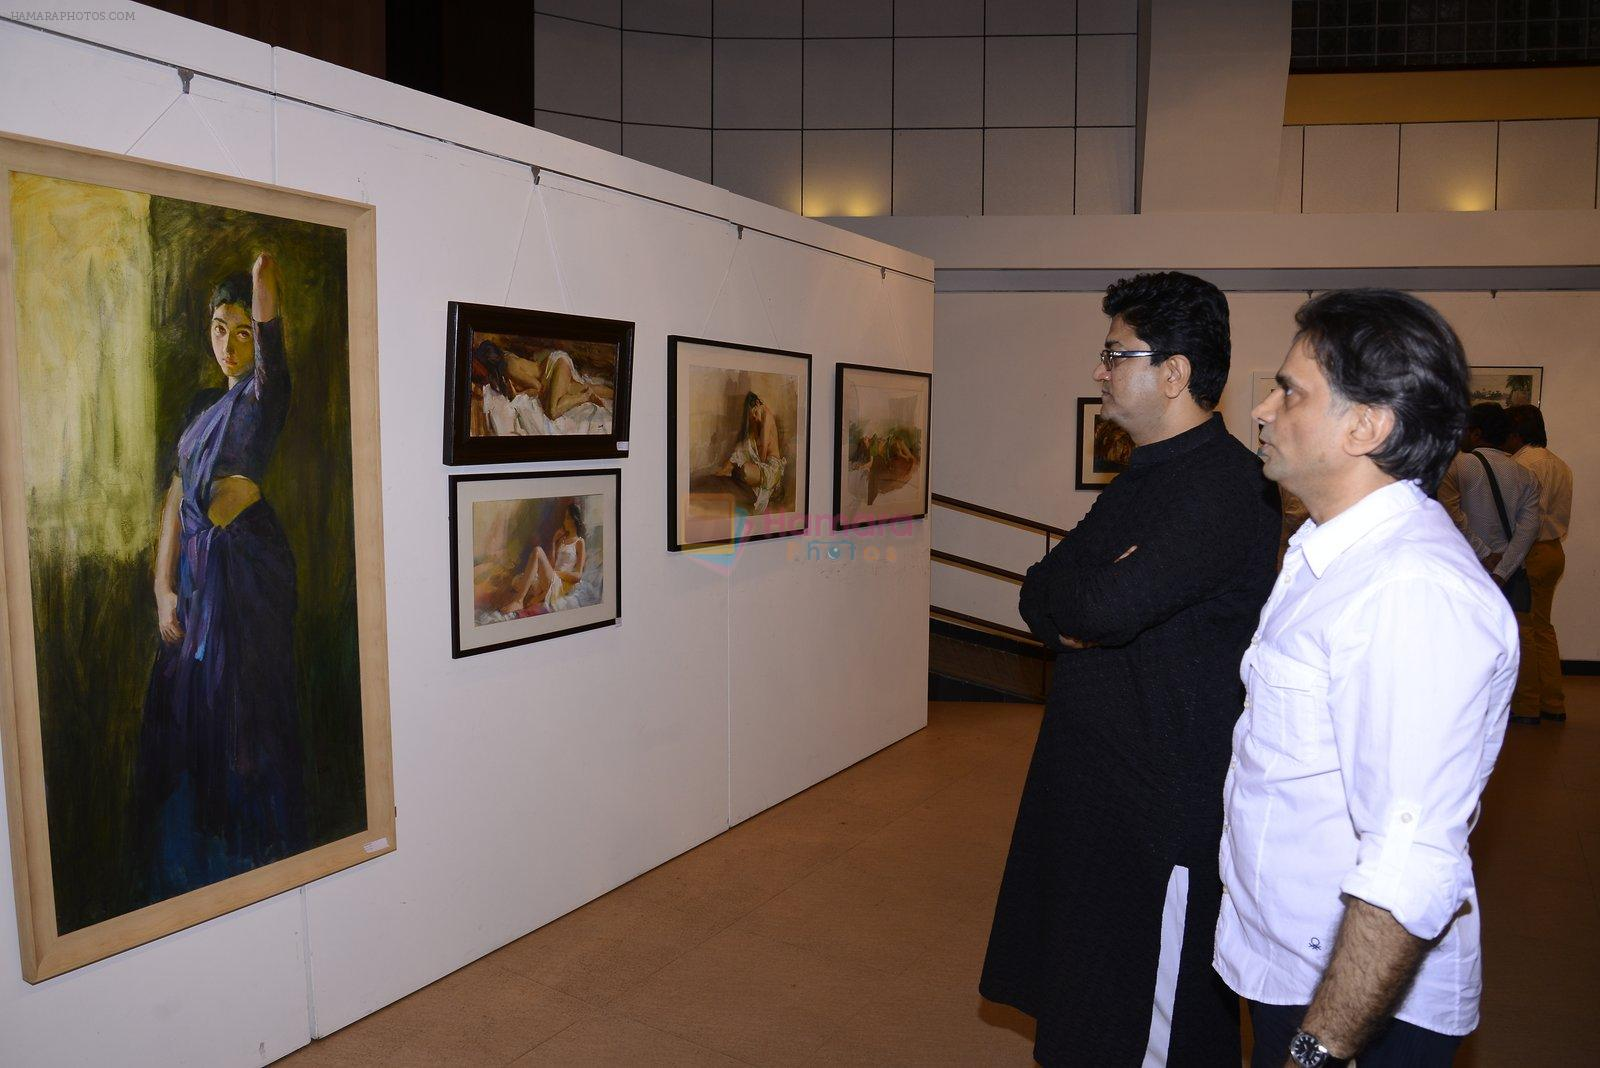 Prasoon Joshi inaugurate the late John Fernandes Masterstrokes art show on 6th Dec 2016